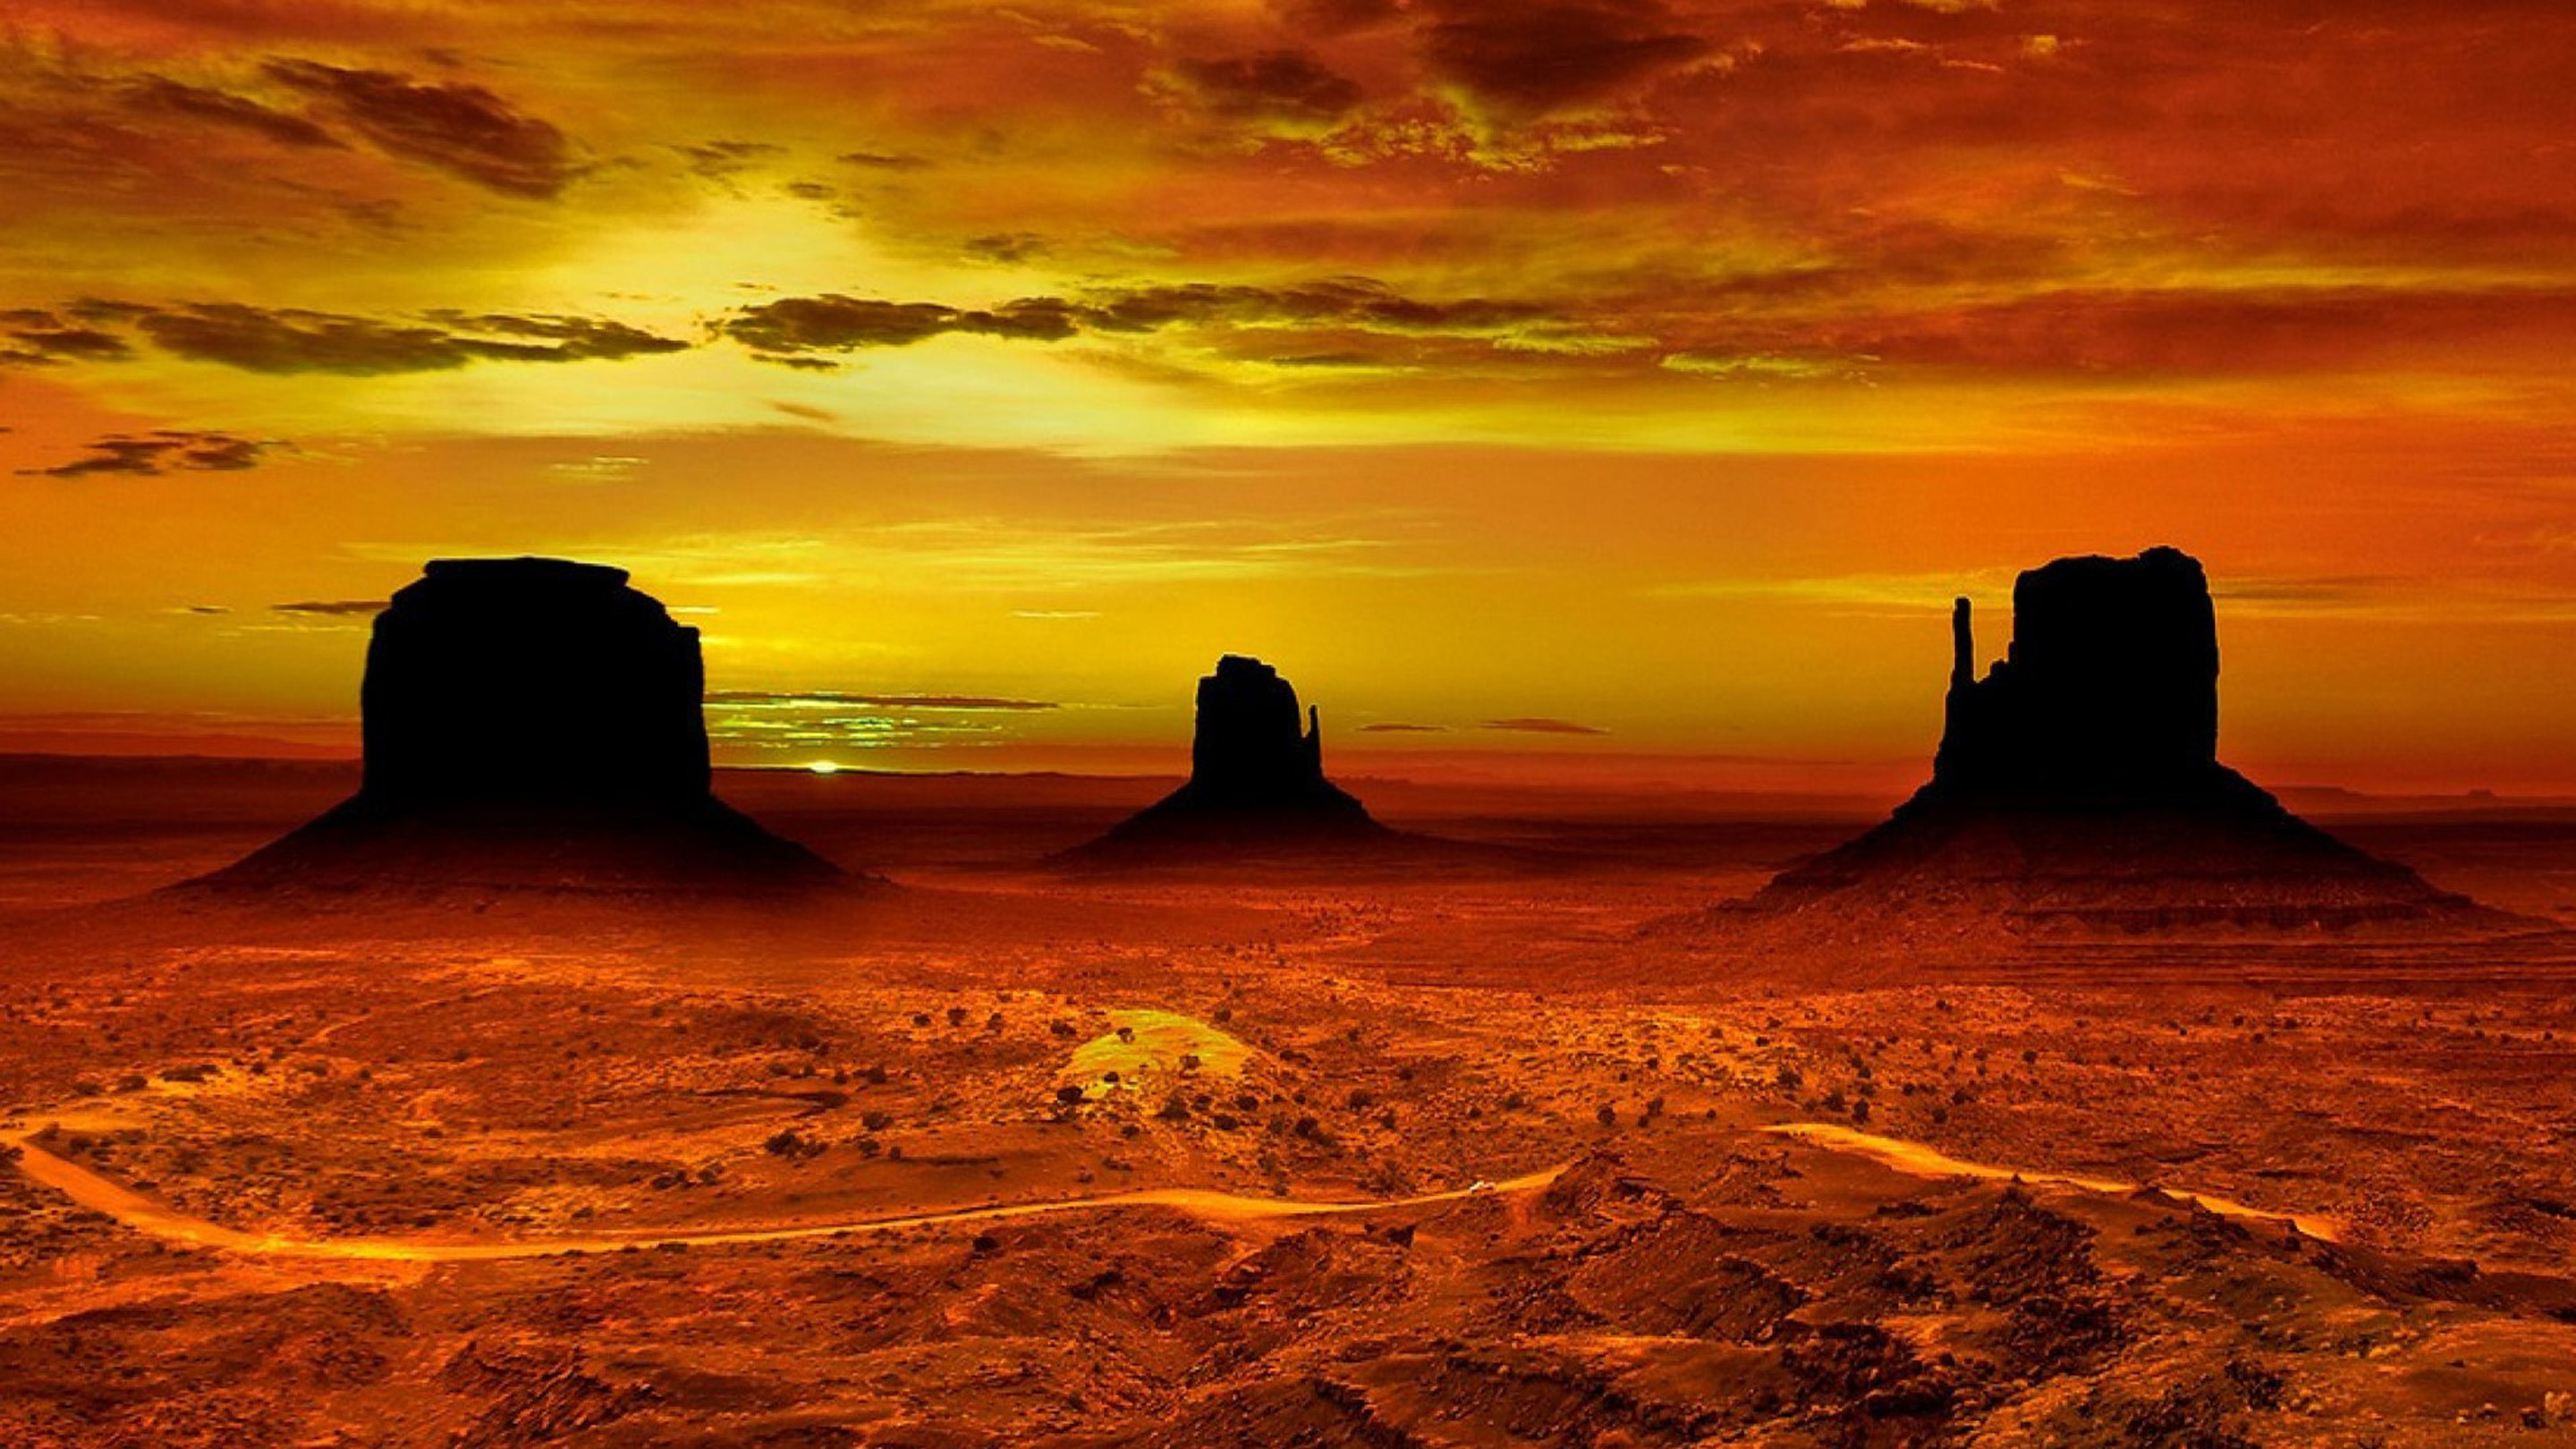 Smoky Mountains Iphone Wallpaper Monument Valley Navajo Tribal Park Red Sunset In Desert